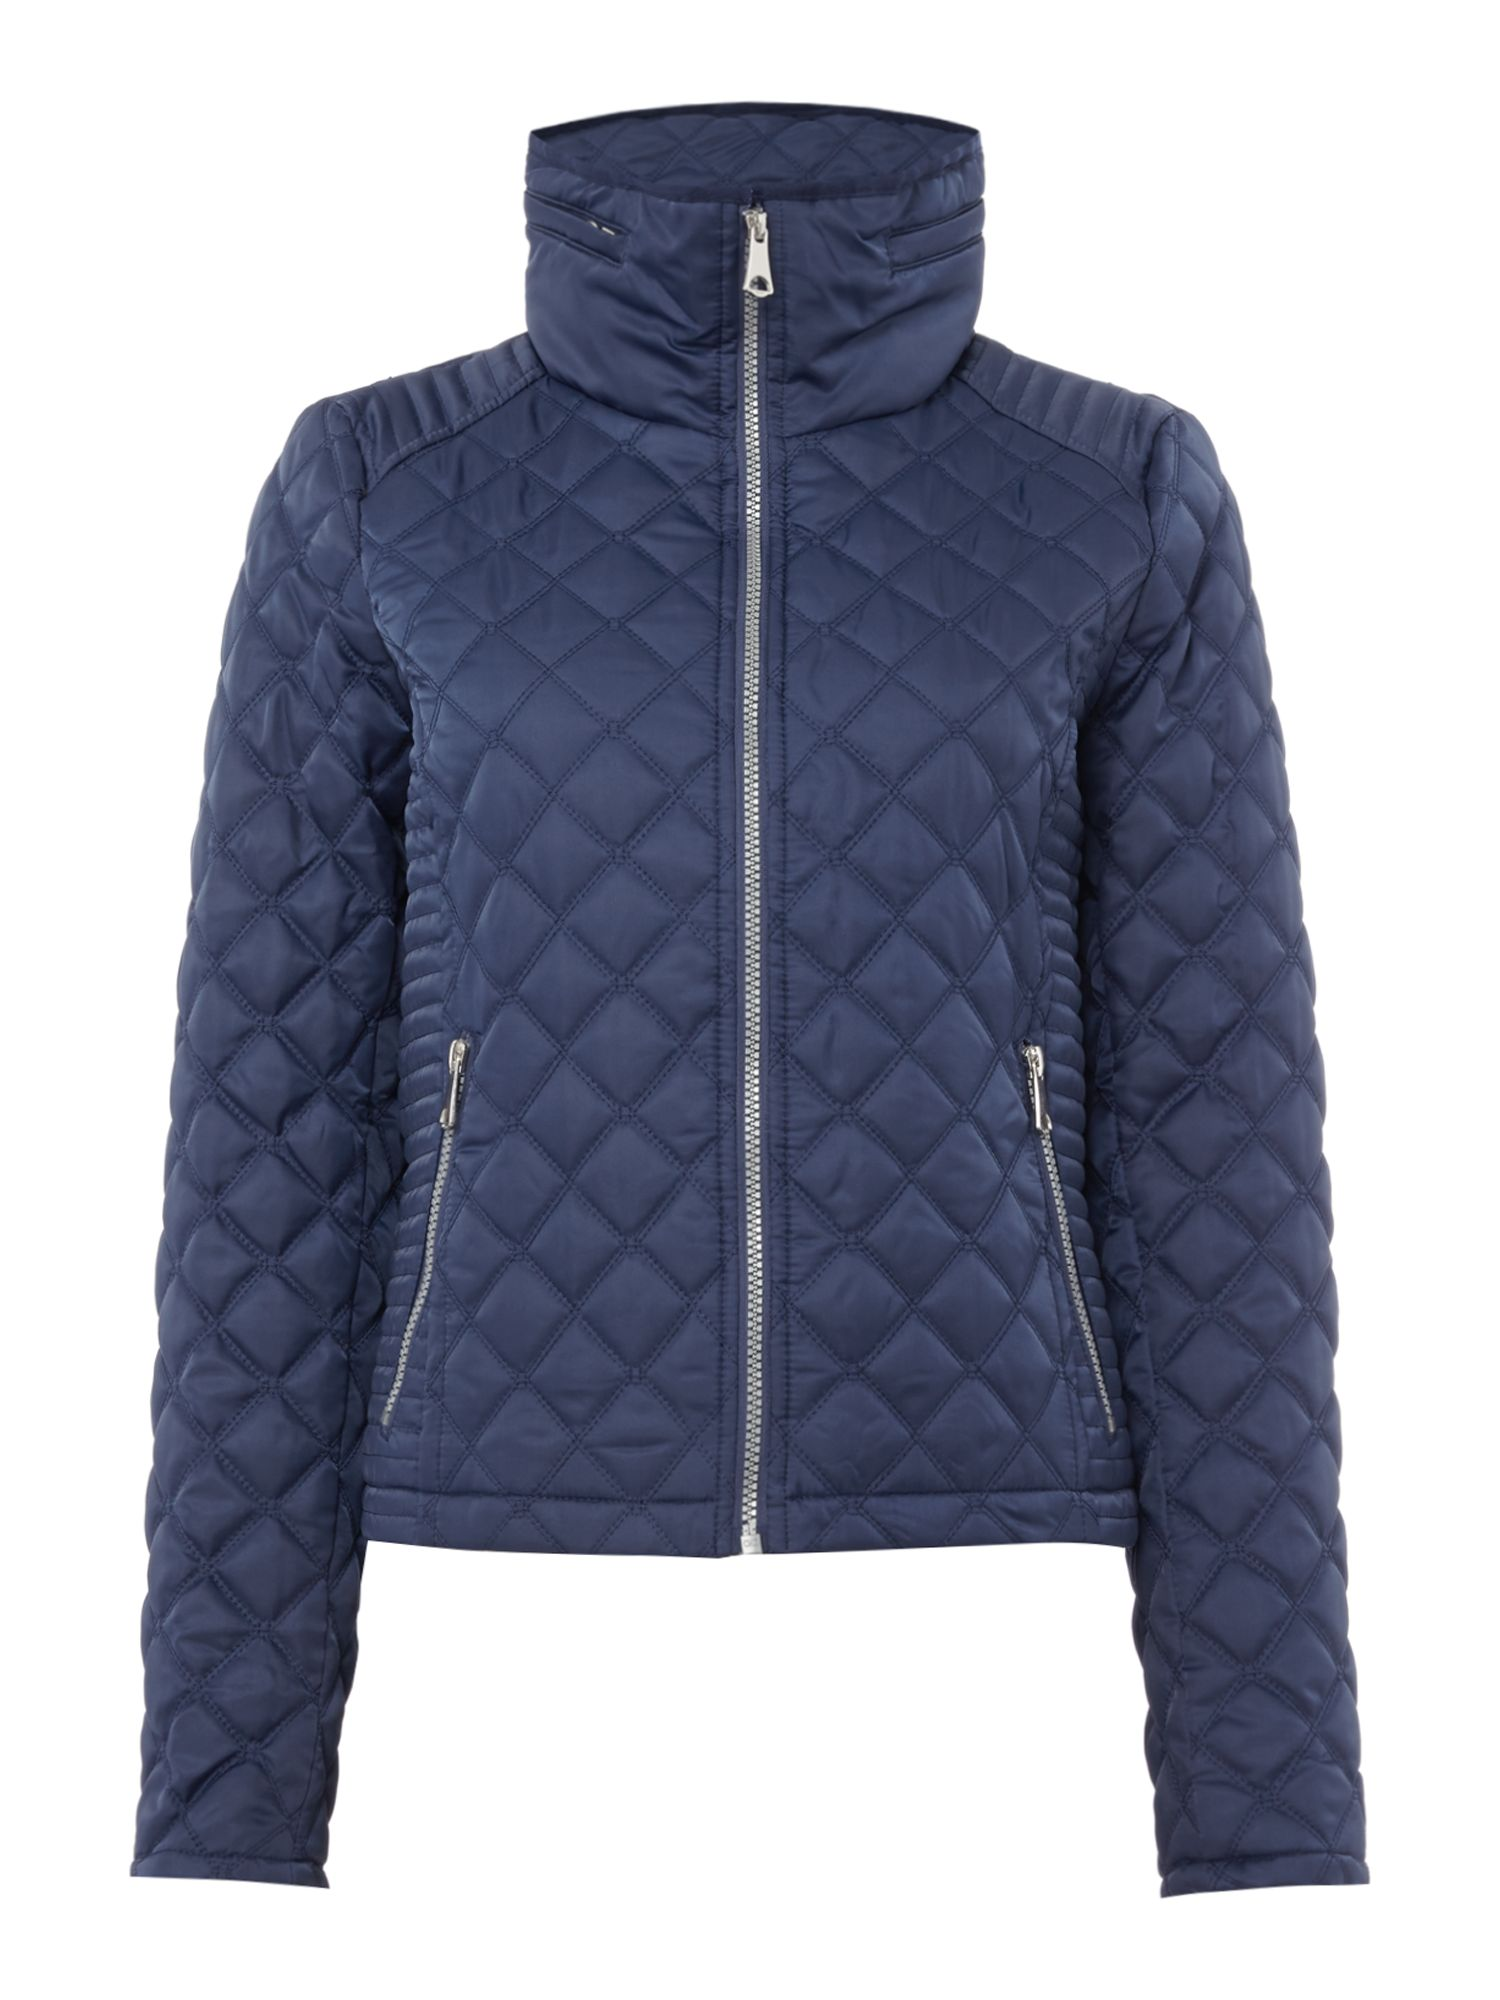 Andrew Marc Quilted jacket with zip detail sleeve, Blue